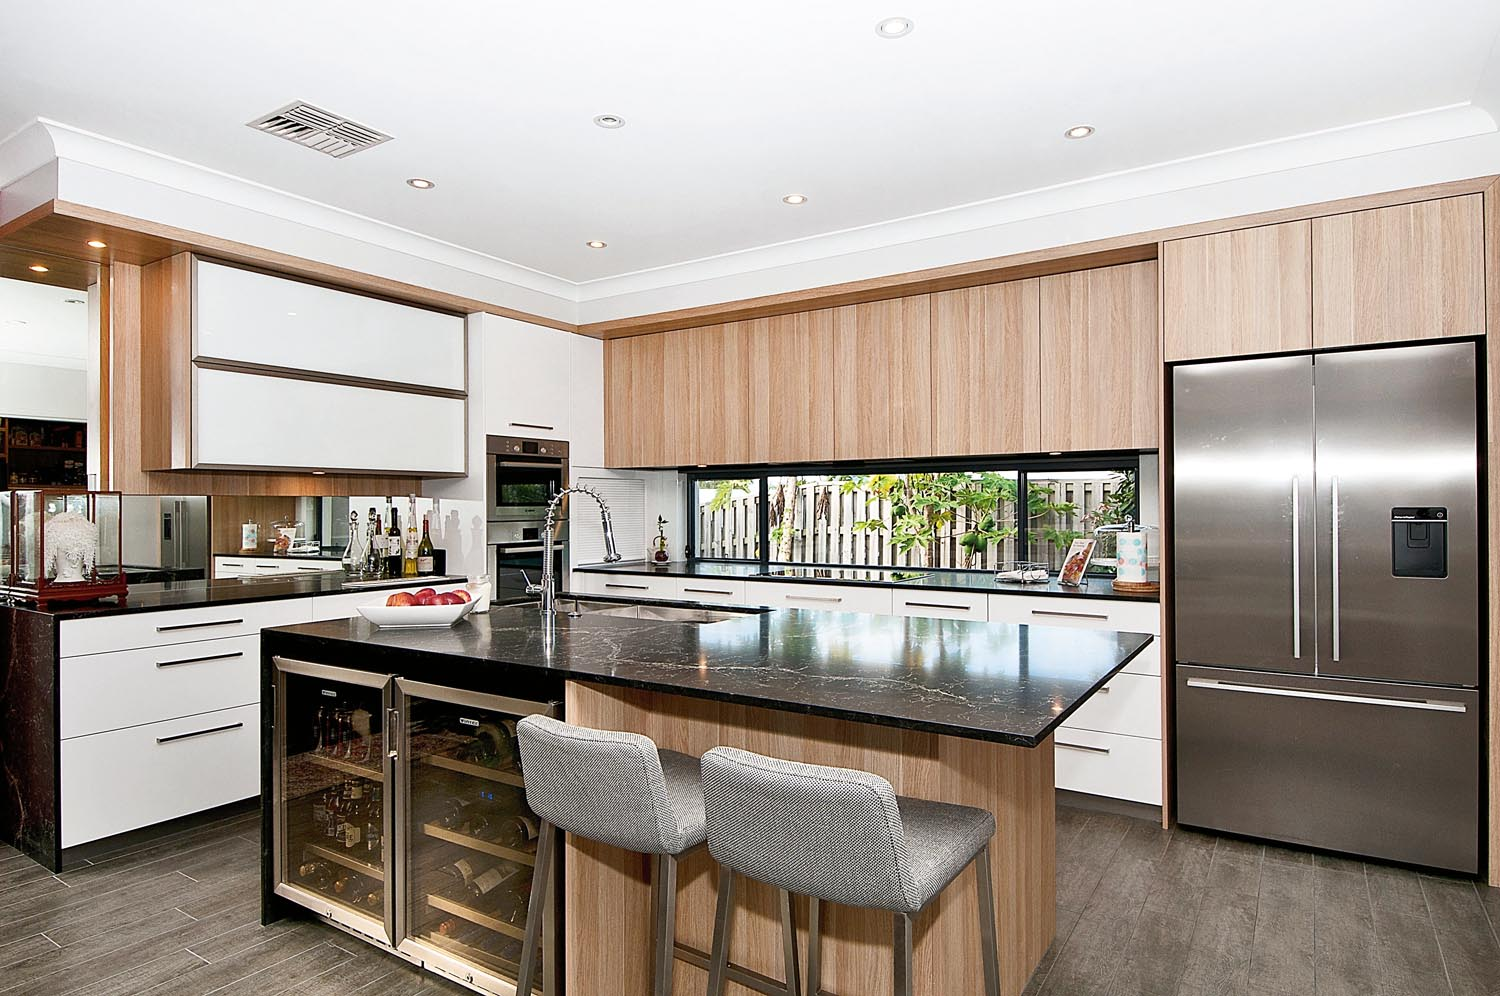 Neat and clean kitchen design completehome for Competitive kitchen designs